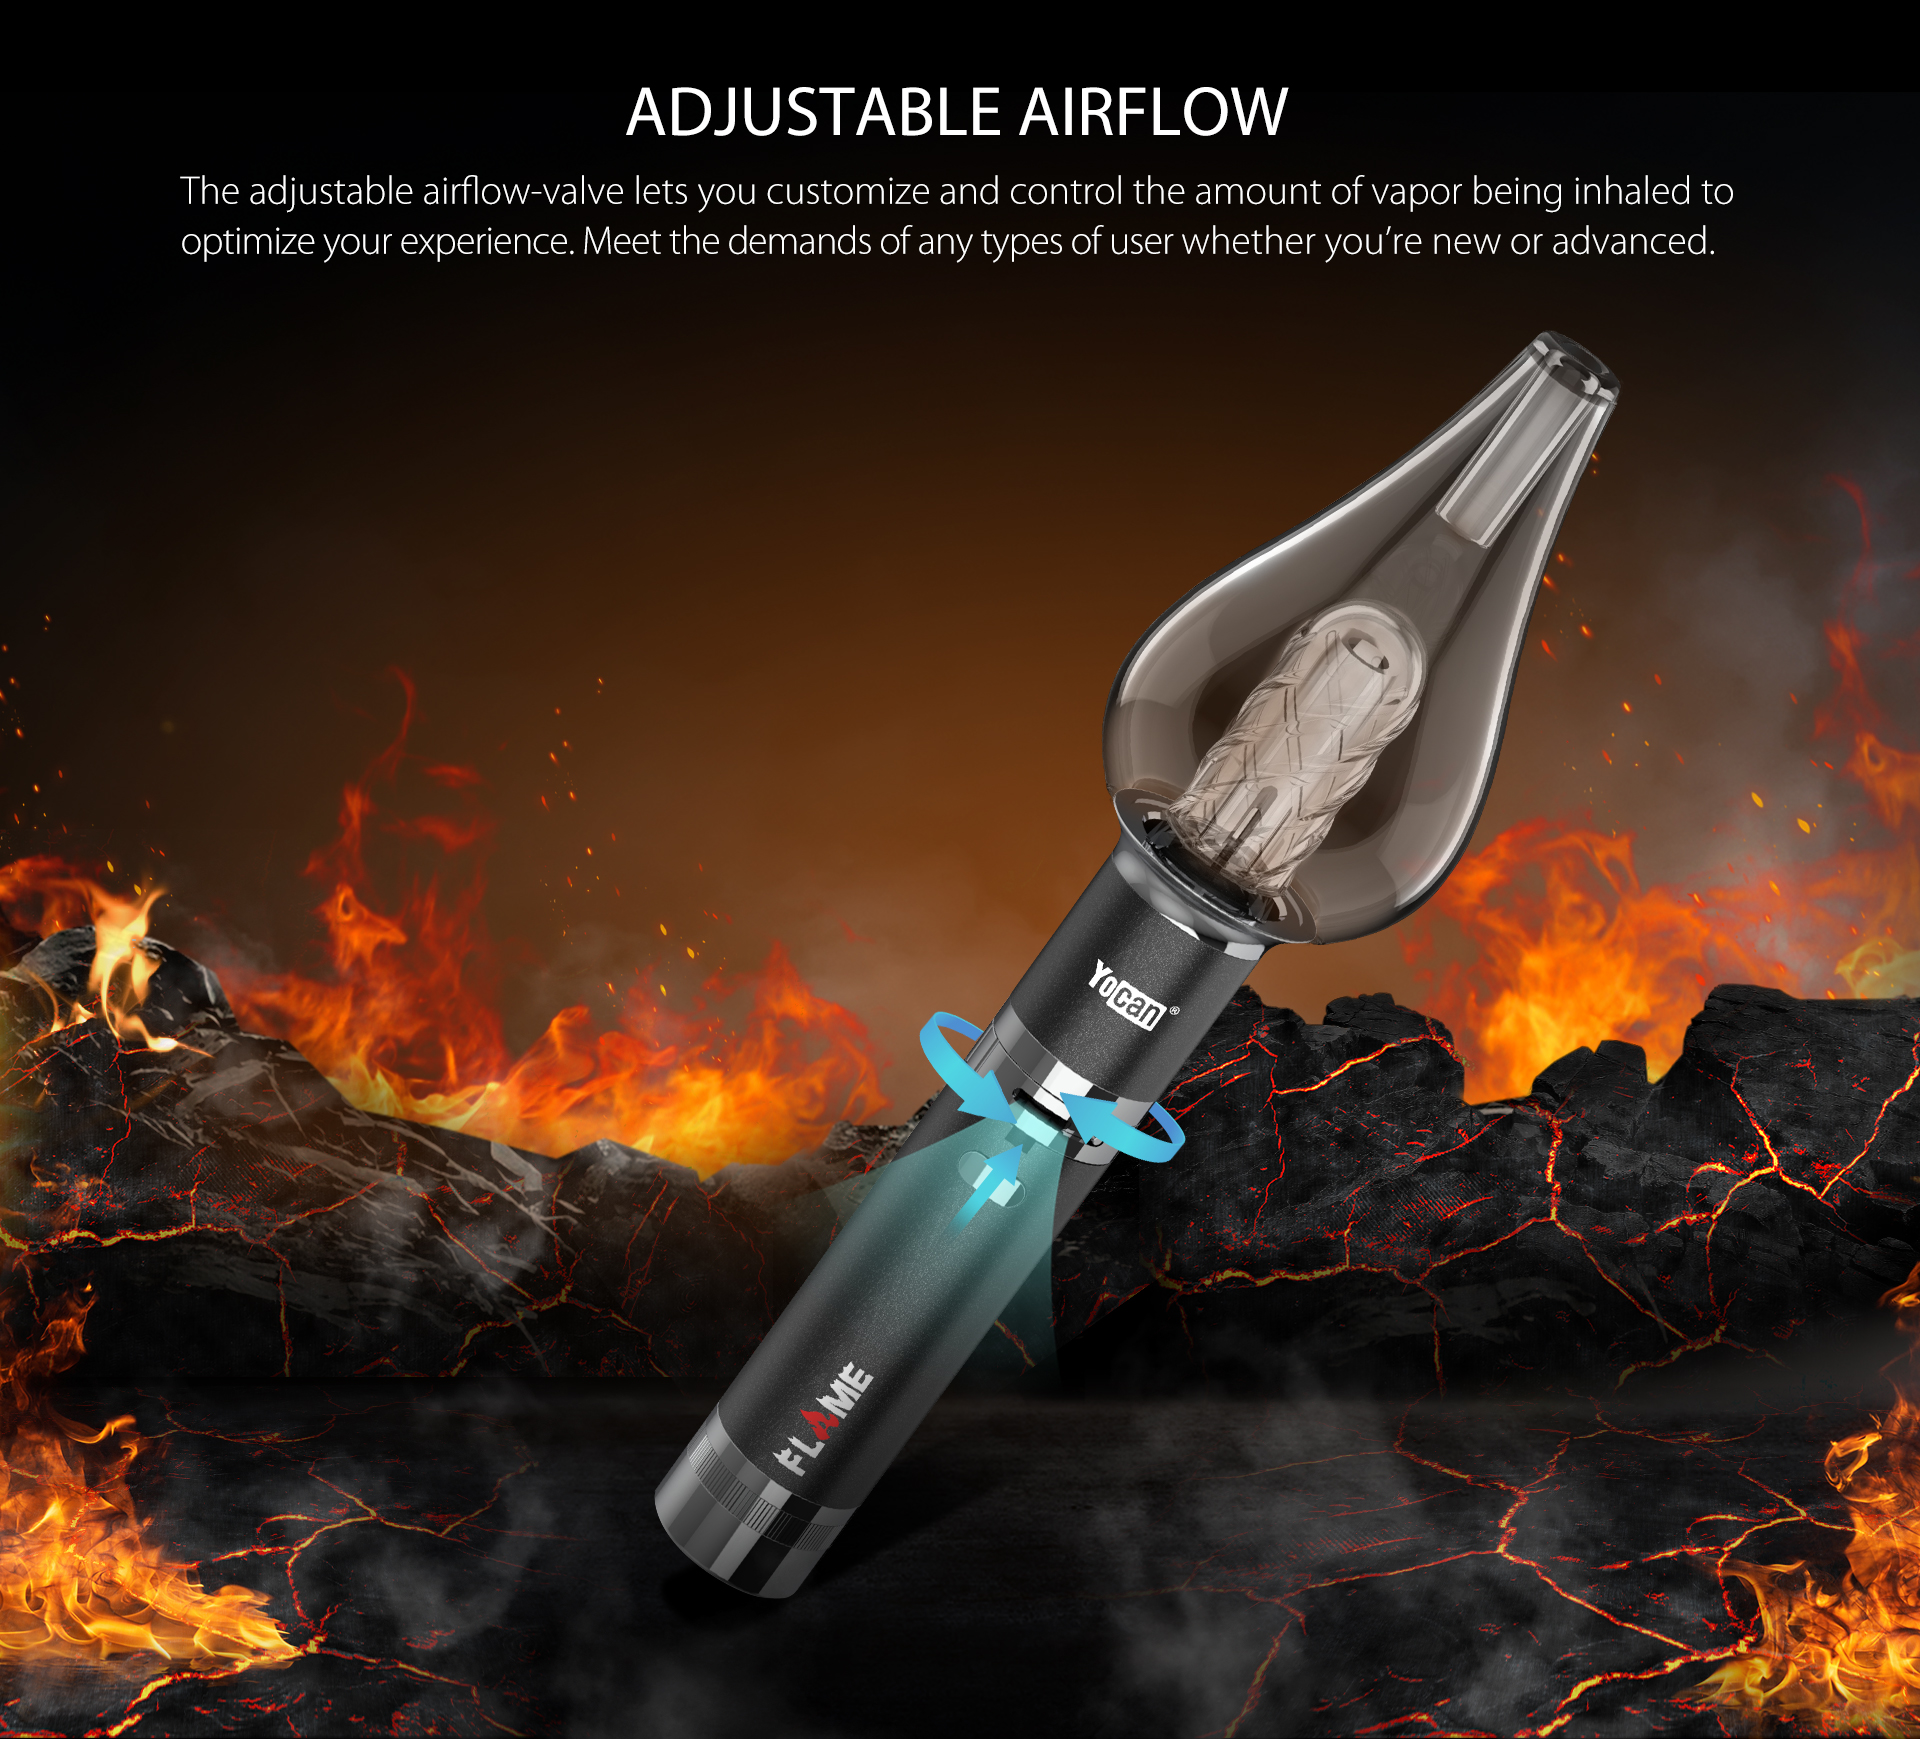 Yocan Flame vaporizer pen featured adjustable airflow-valve function.